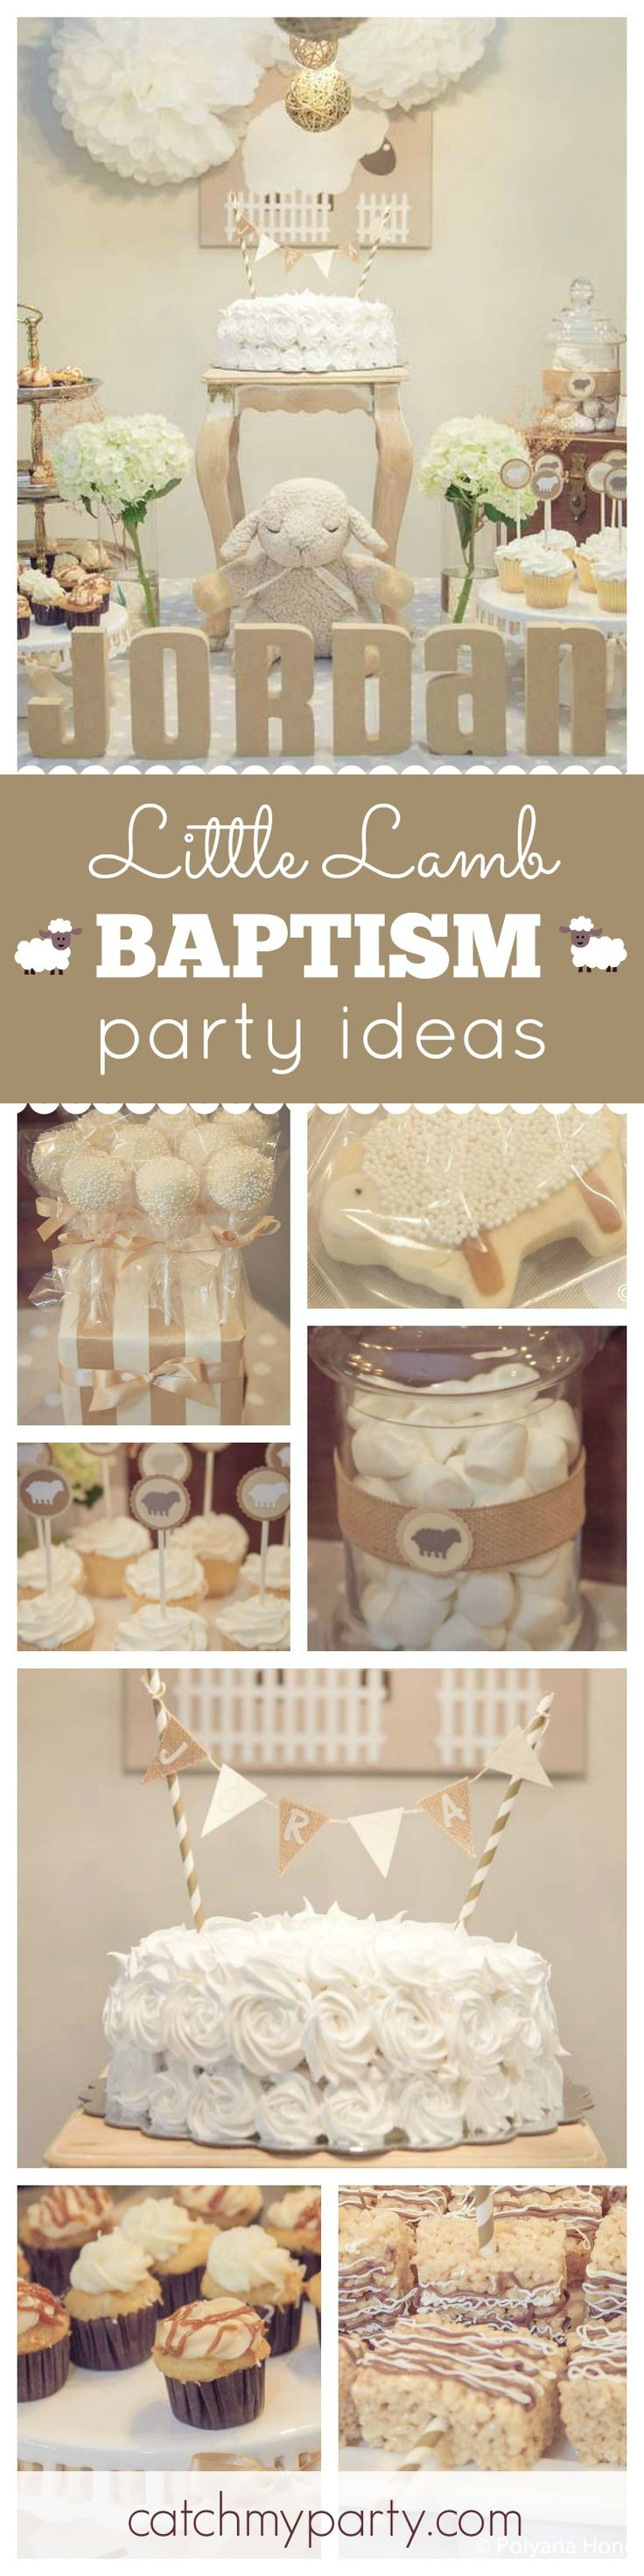 8 best sheep images on pinterest lamb baby showers shower baby